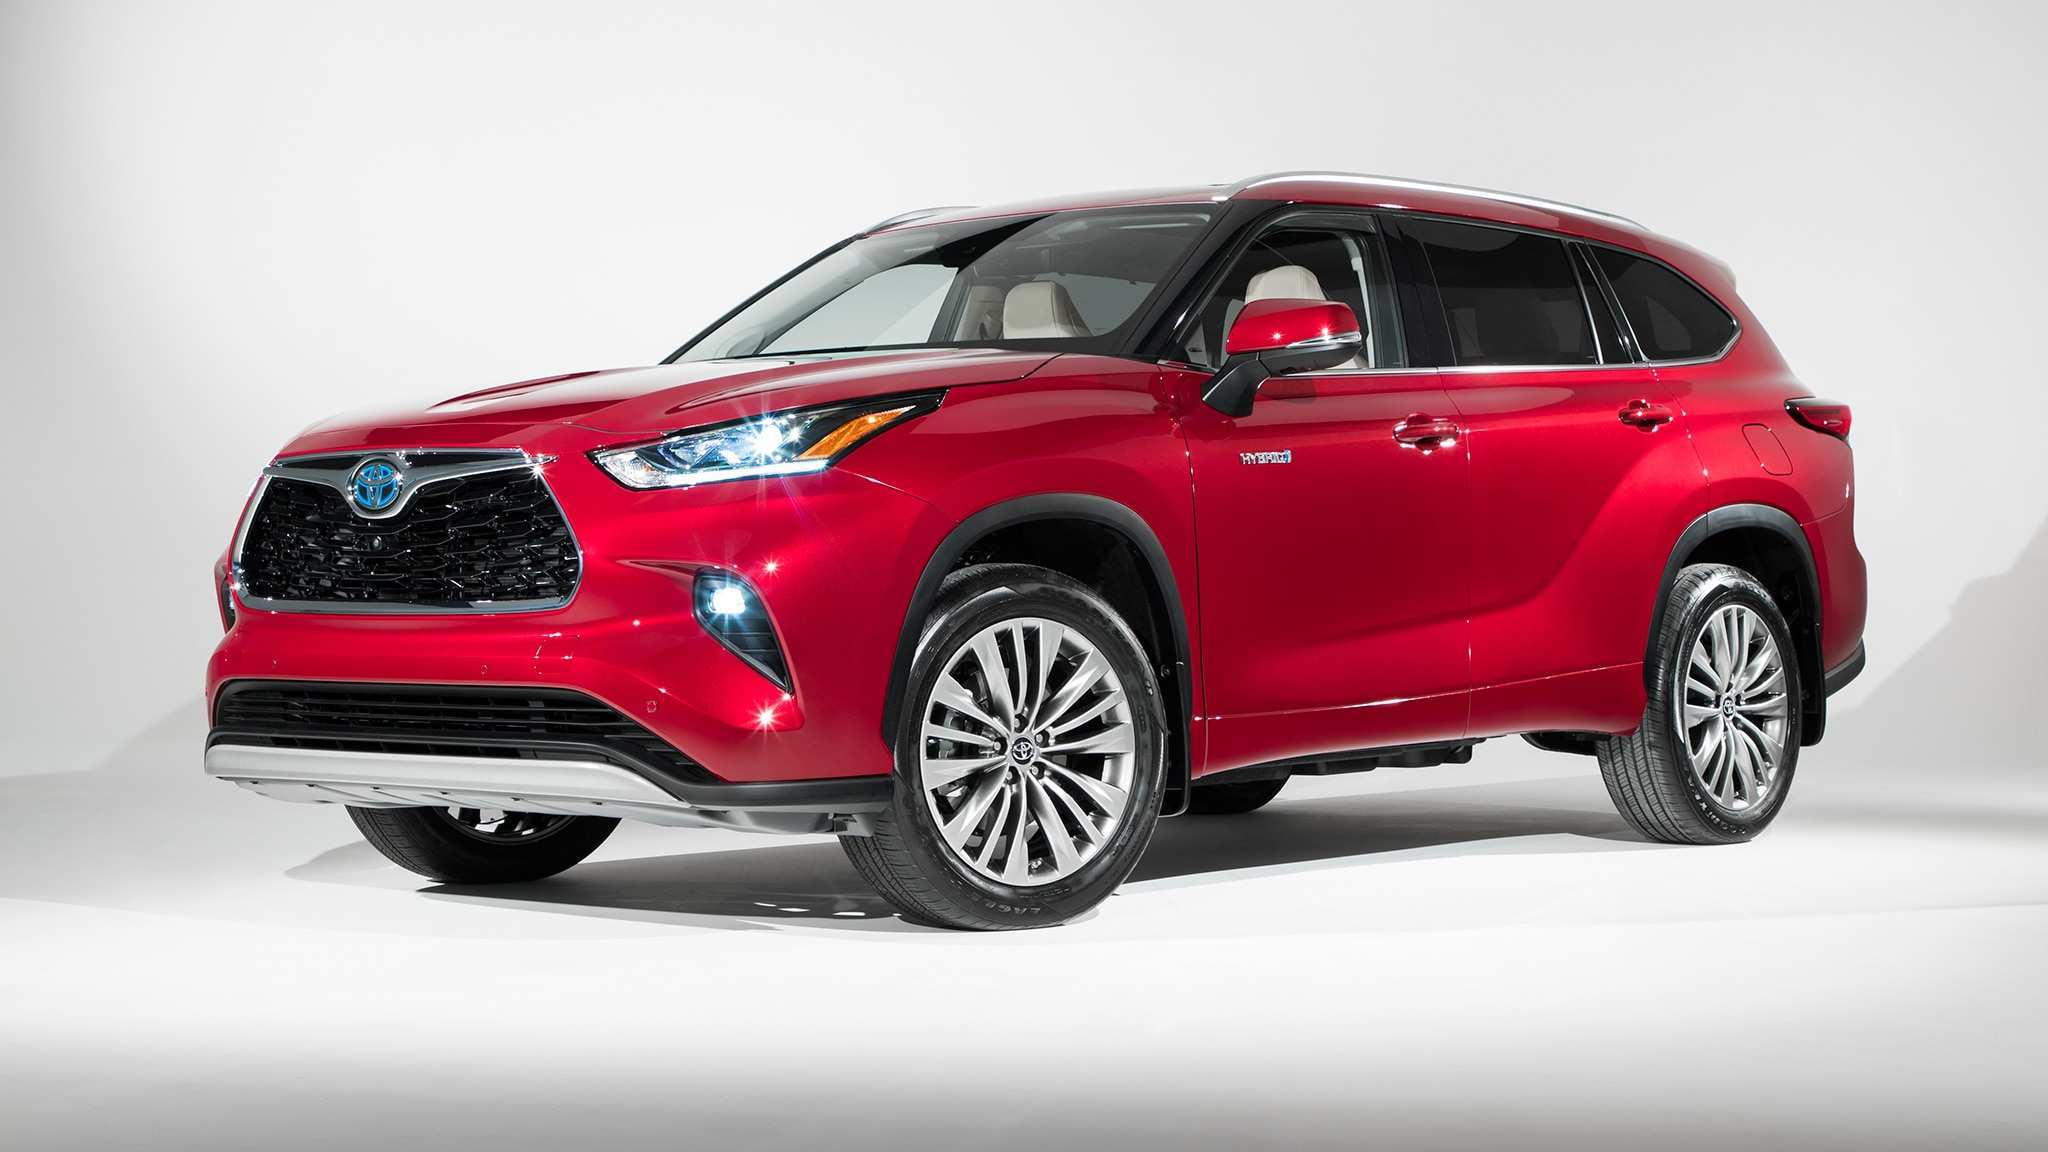 52 The Toyota Kluger 2020 Model Wallpaper